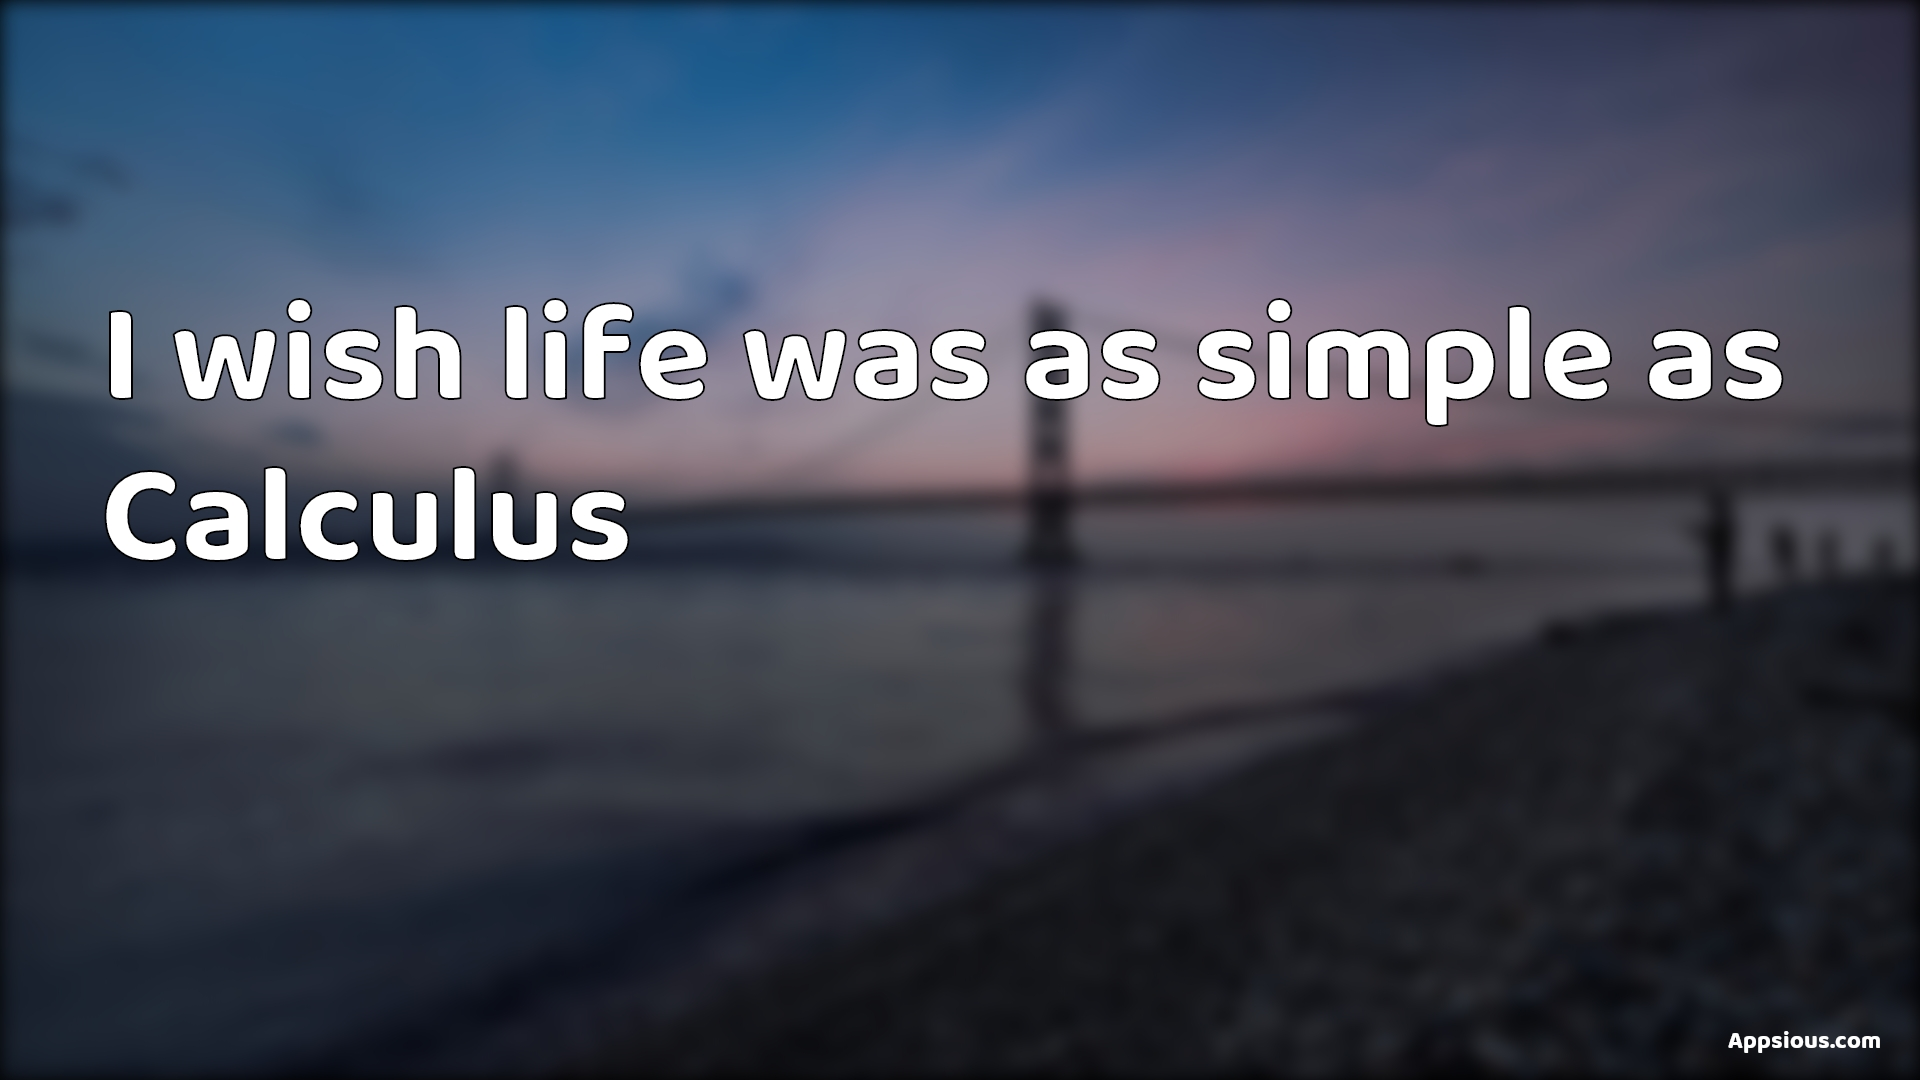 I wish life was as simple as Calculus